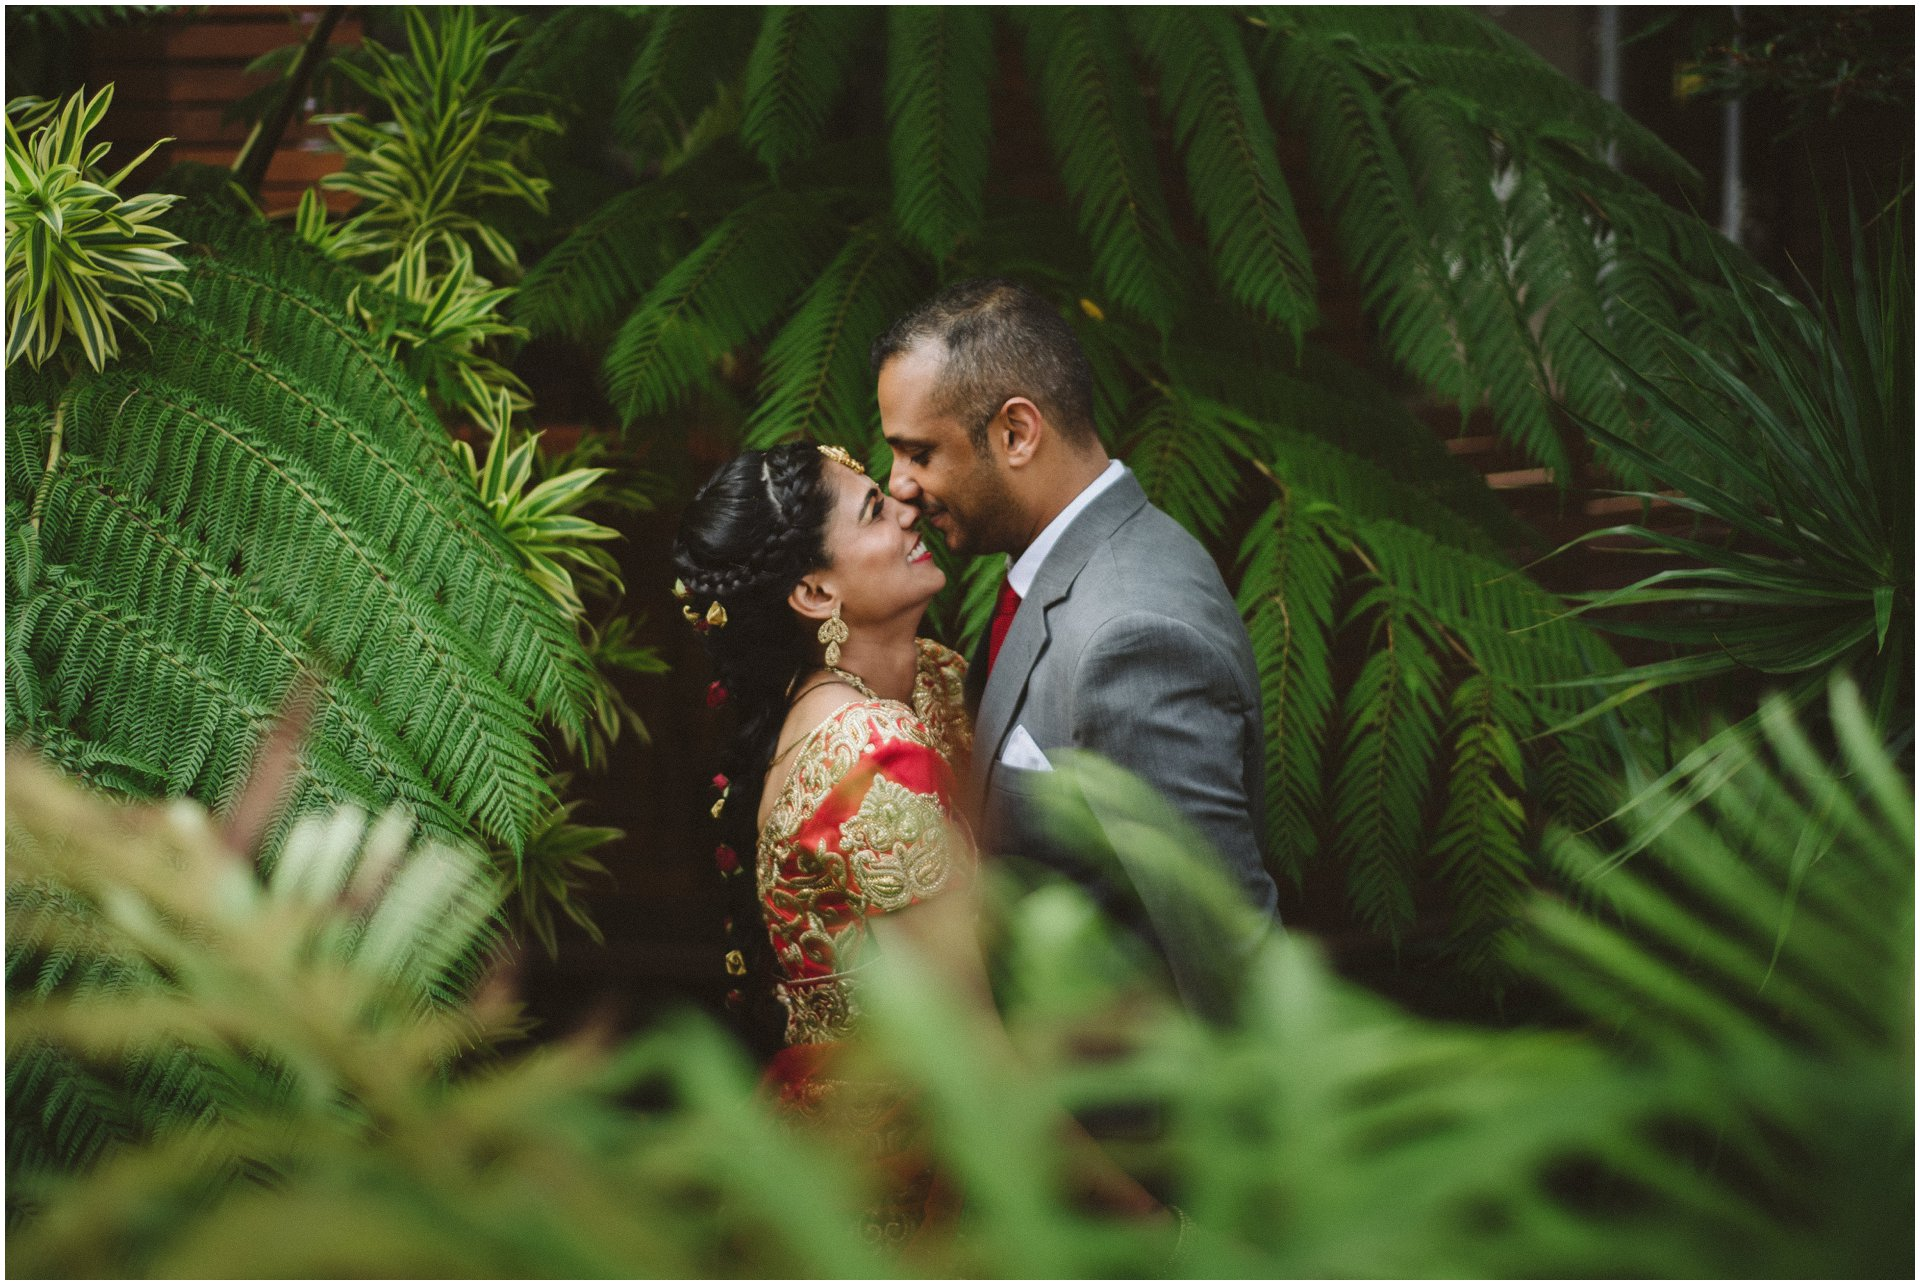 Shree Radha Krishna Temple Wedding | Sairu & Deshen